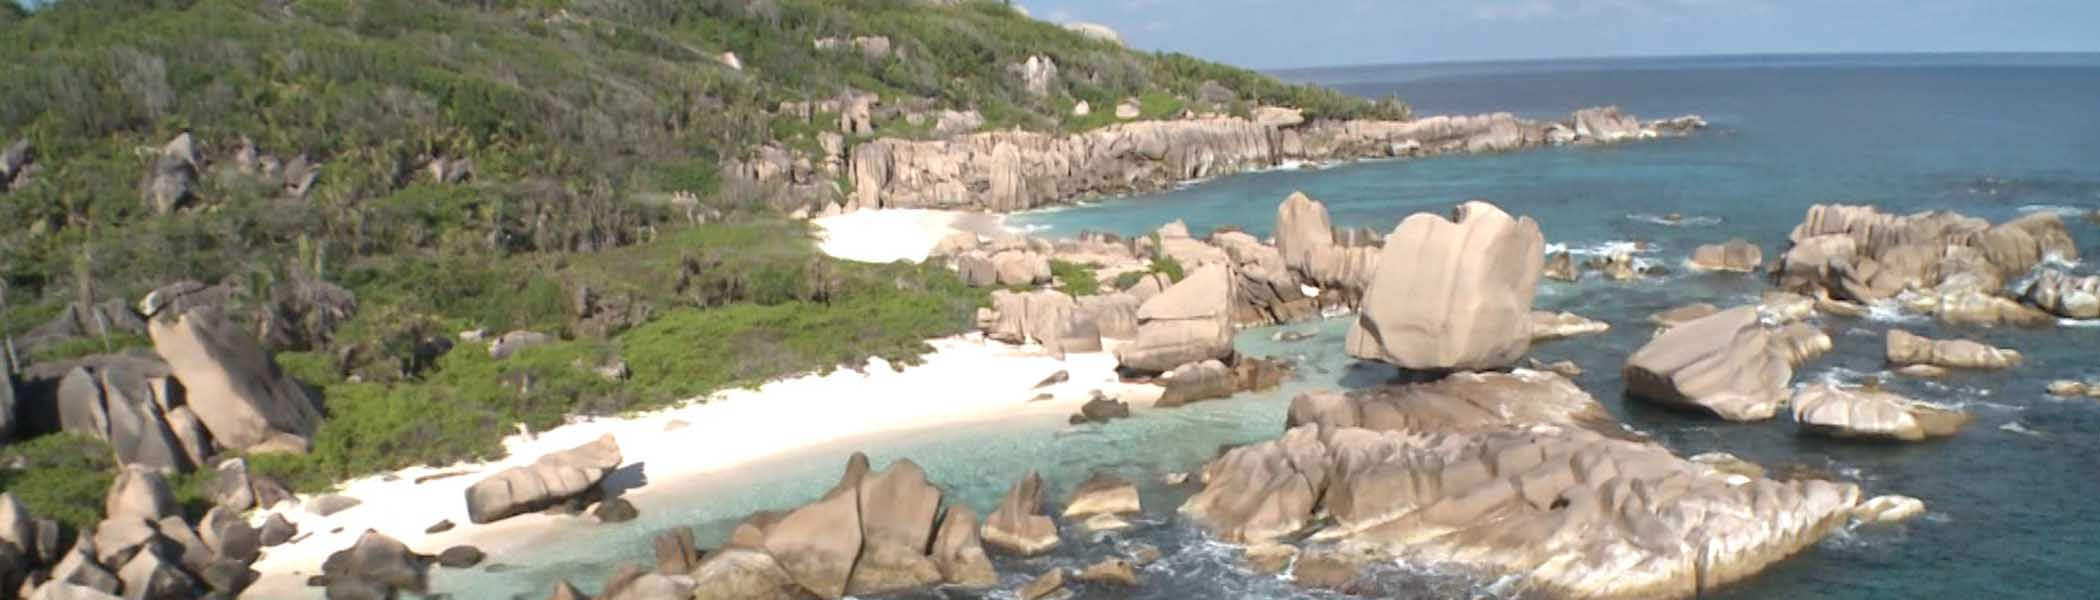 anse-marron, Beaches in Seychelles Islands